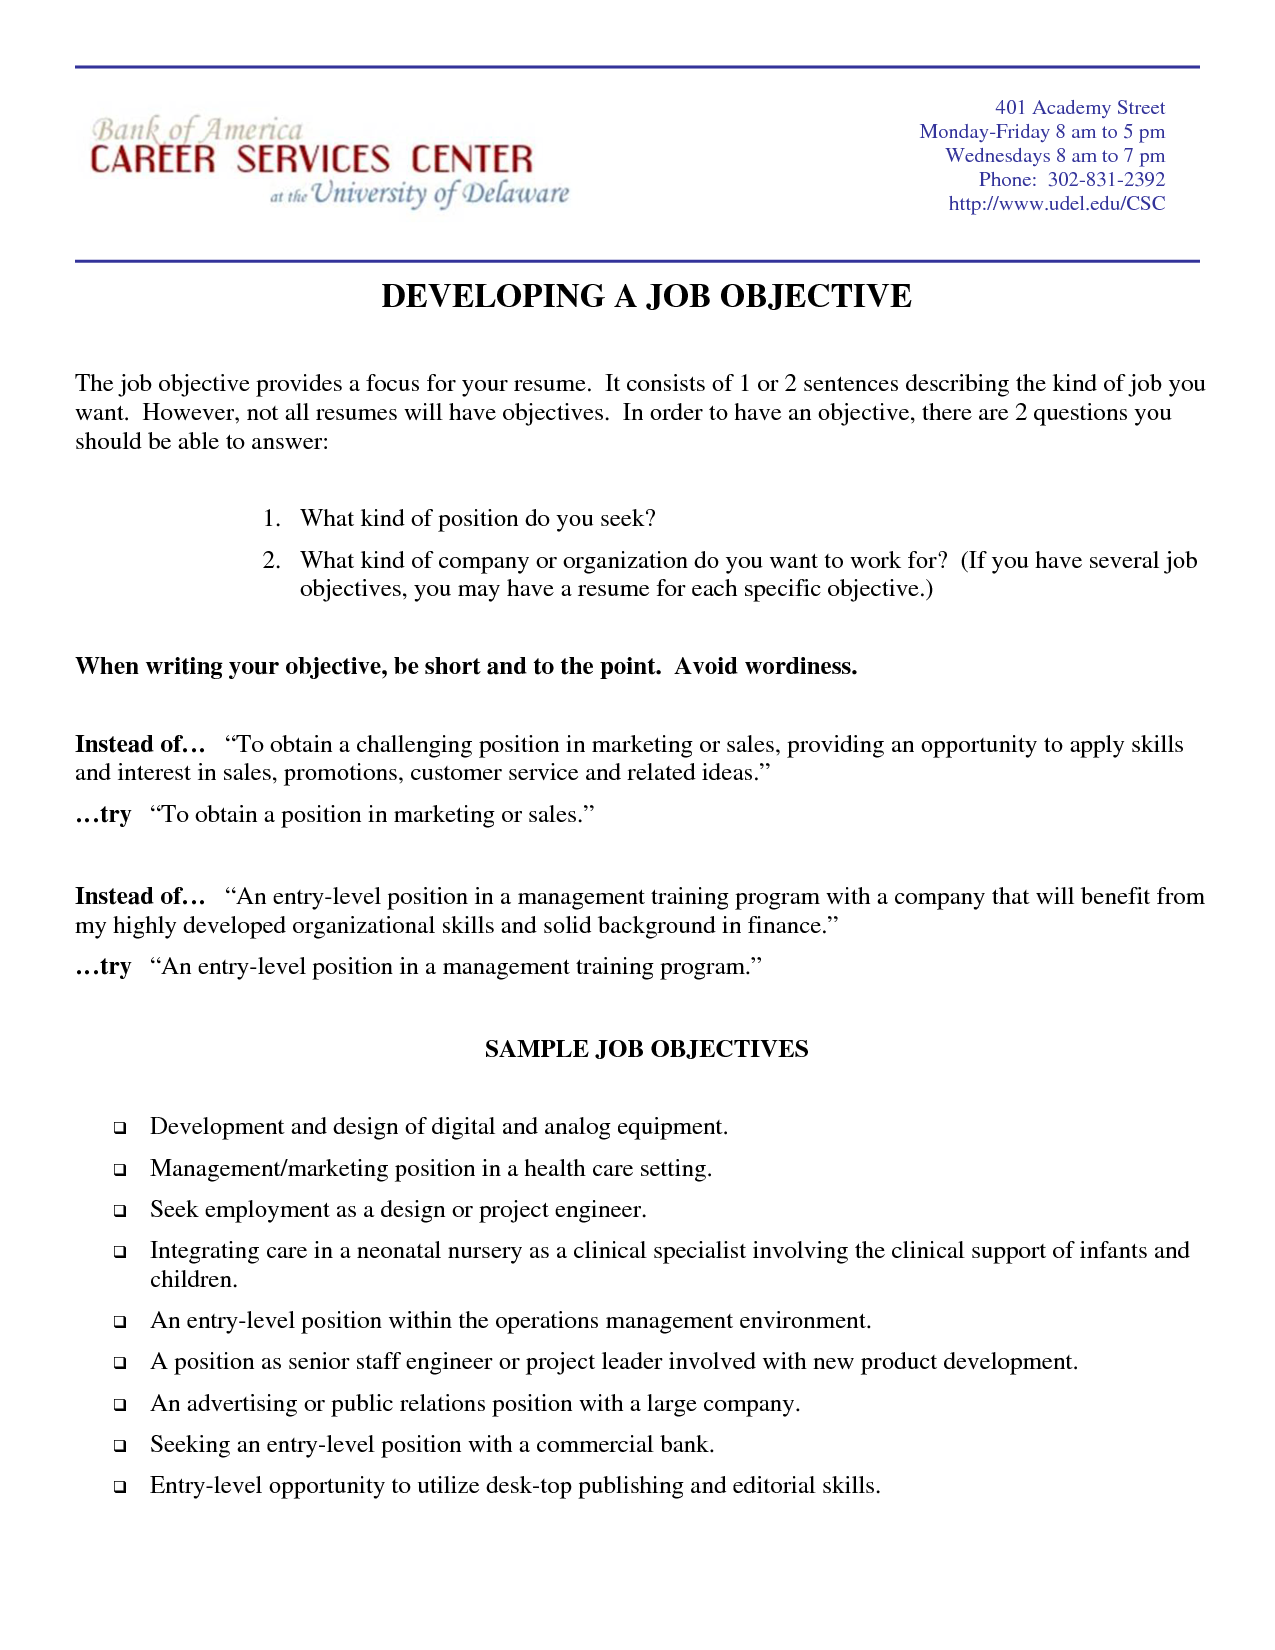 Job Objective For Resume Marketing Resume Objective Samples Resumes Design The Relic